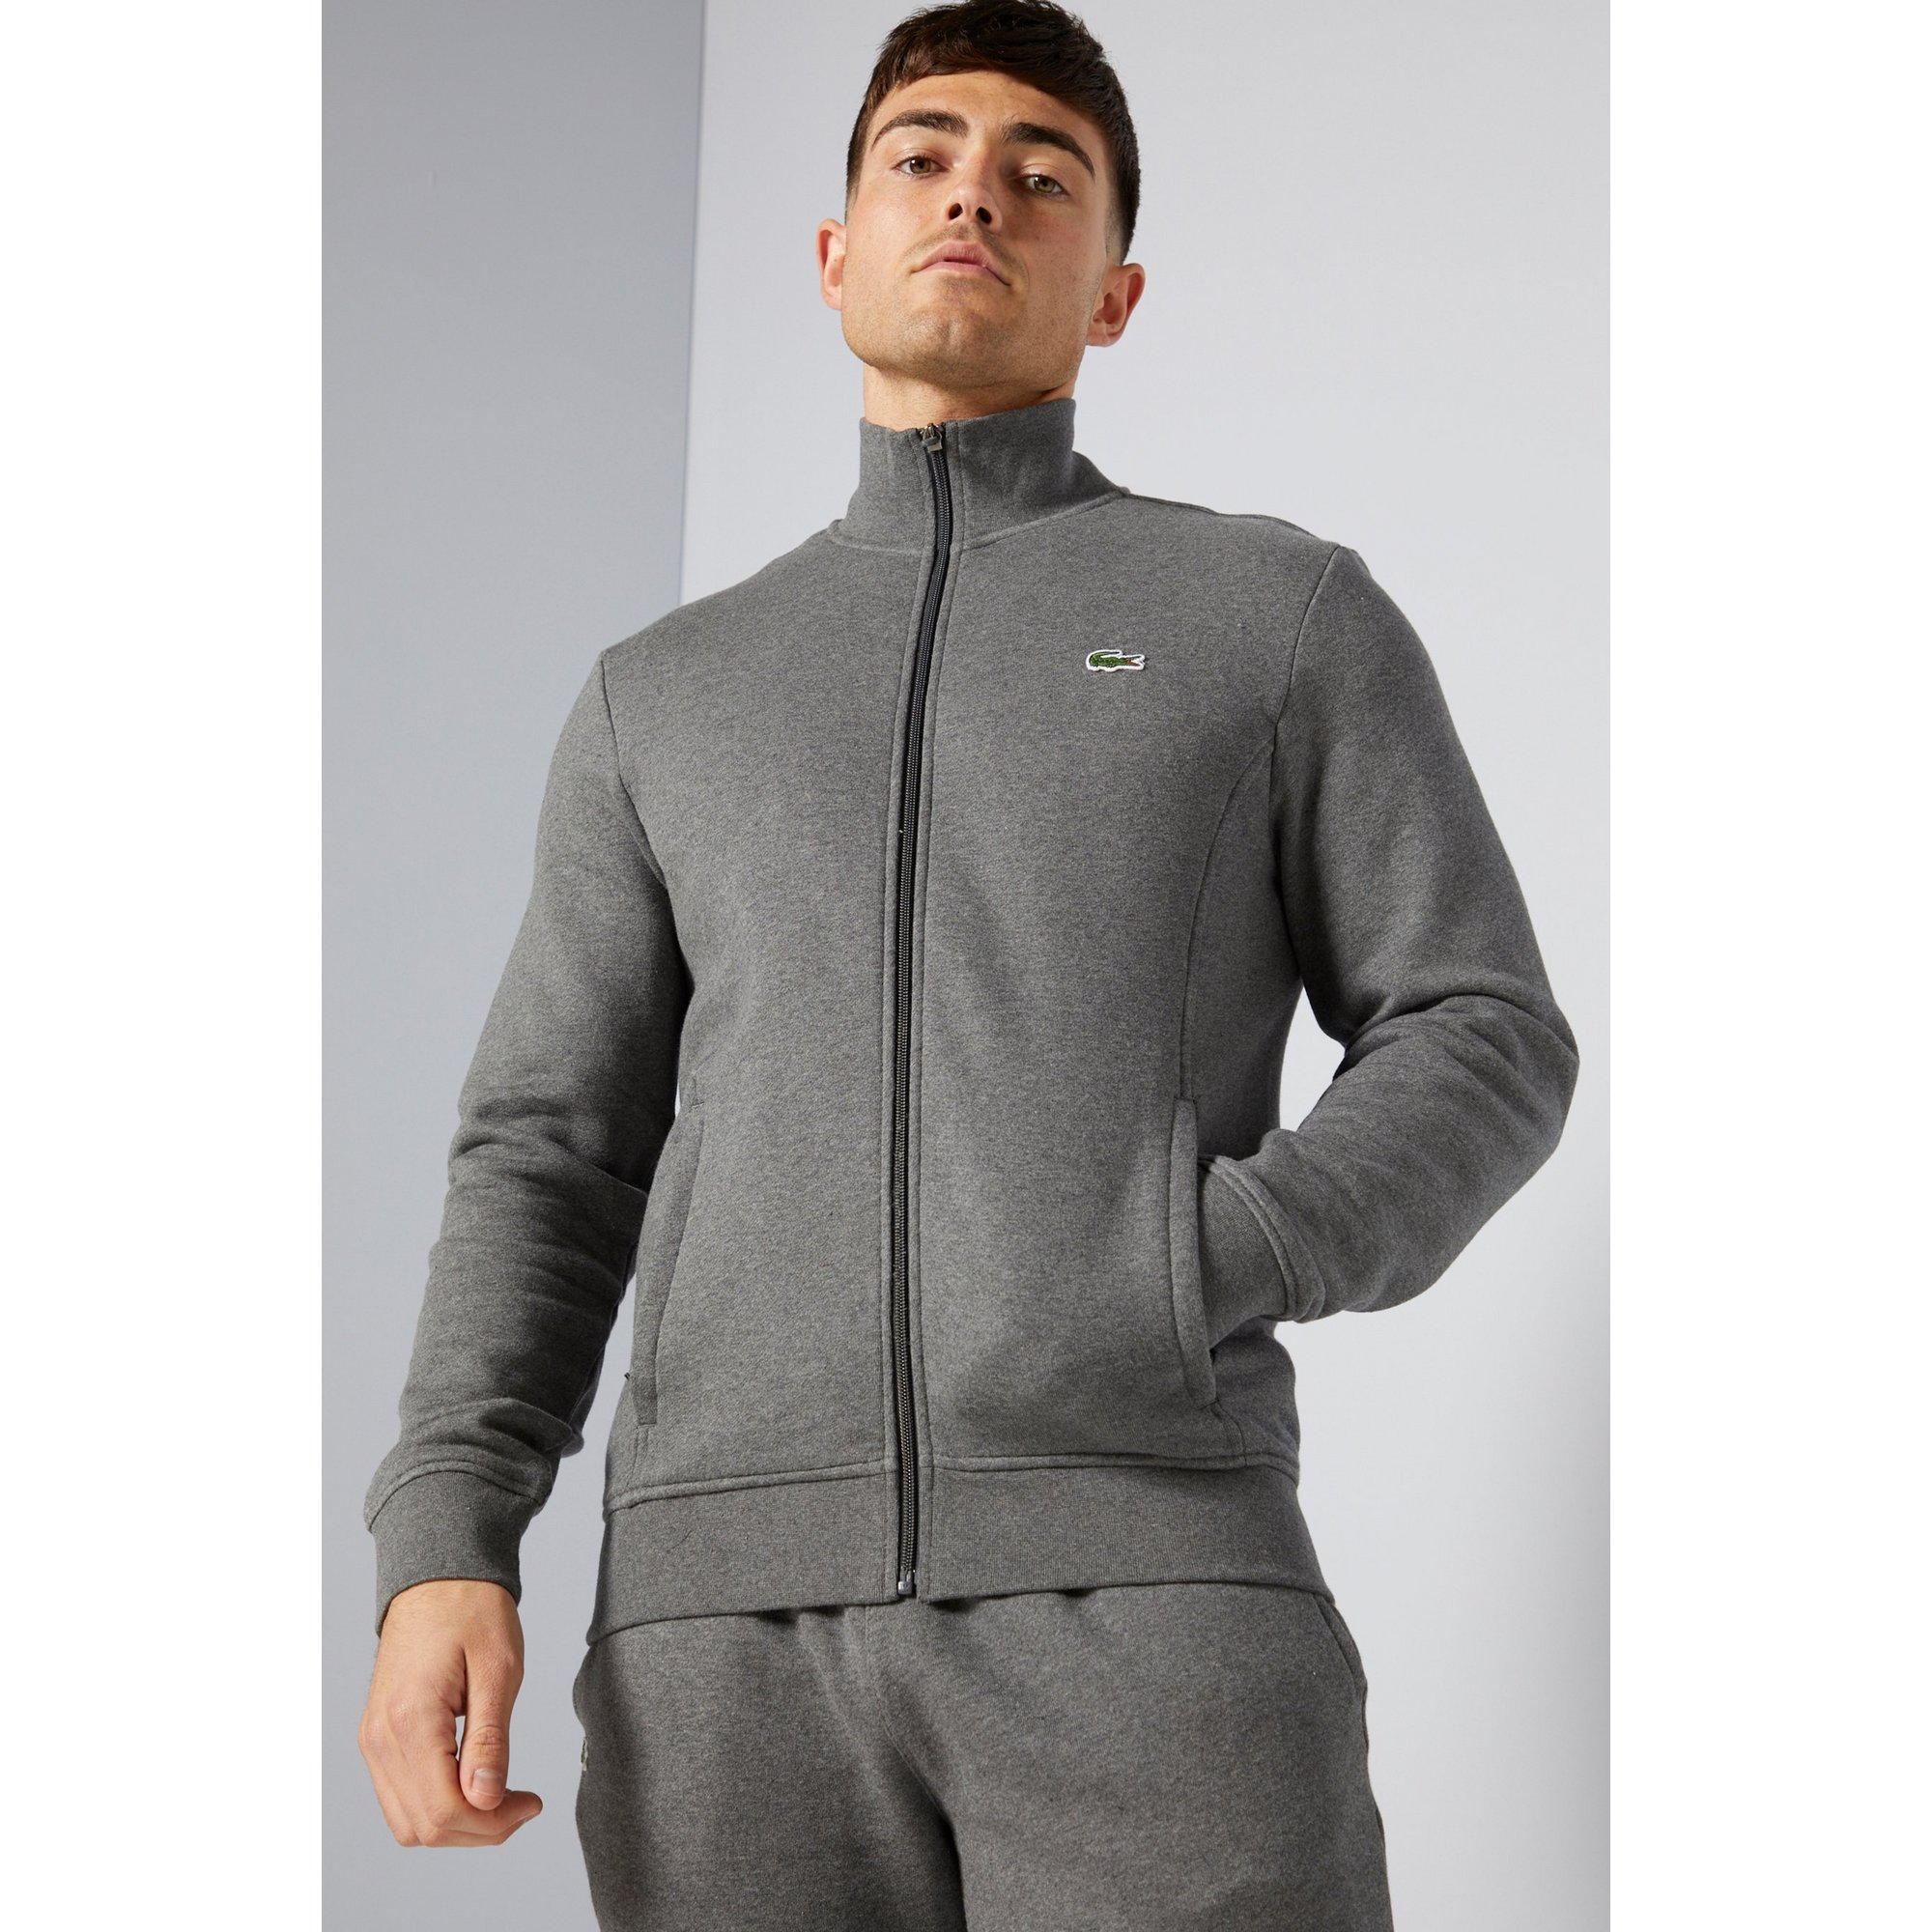 Image of Lacoste Charcoal Track Top